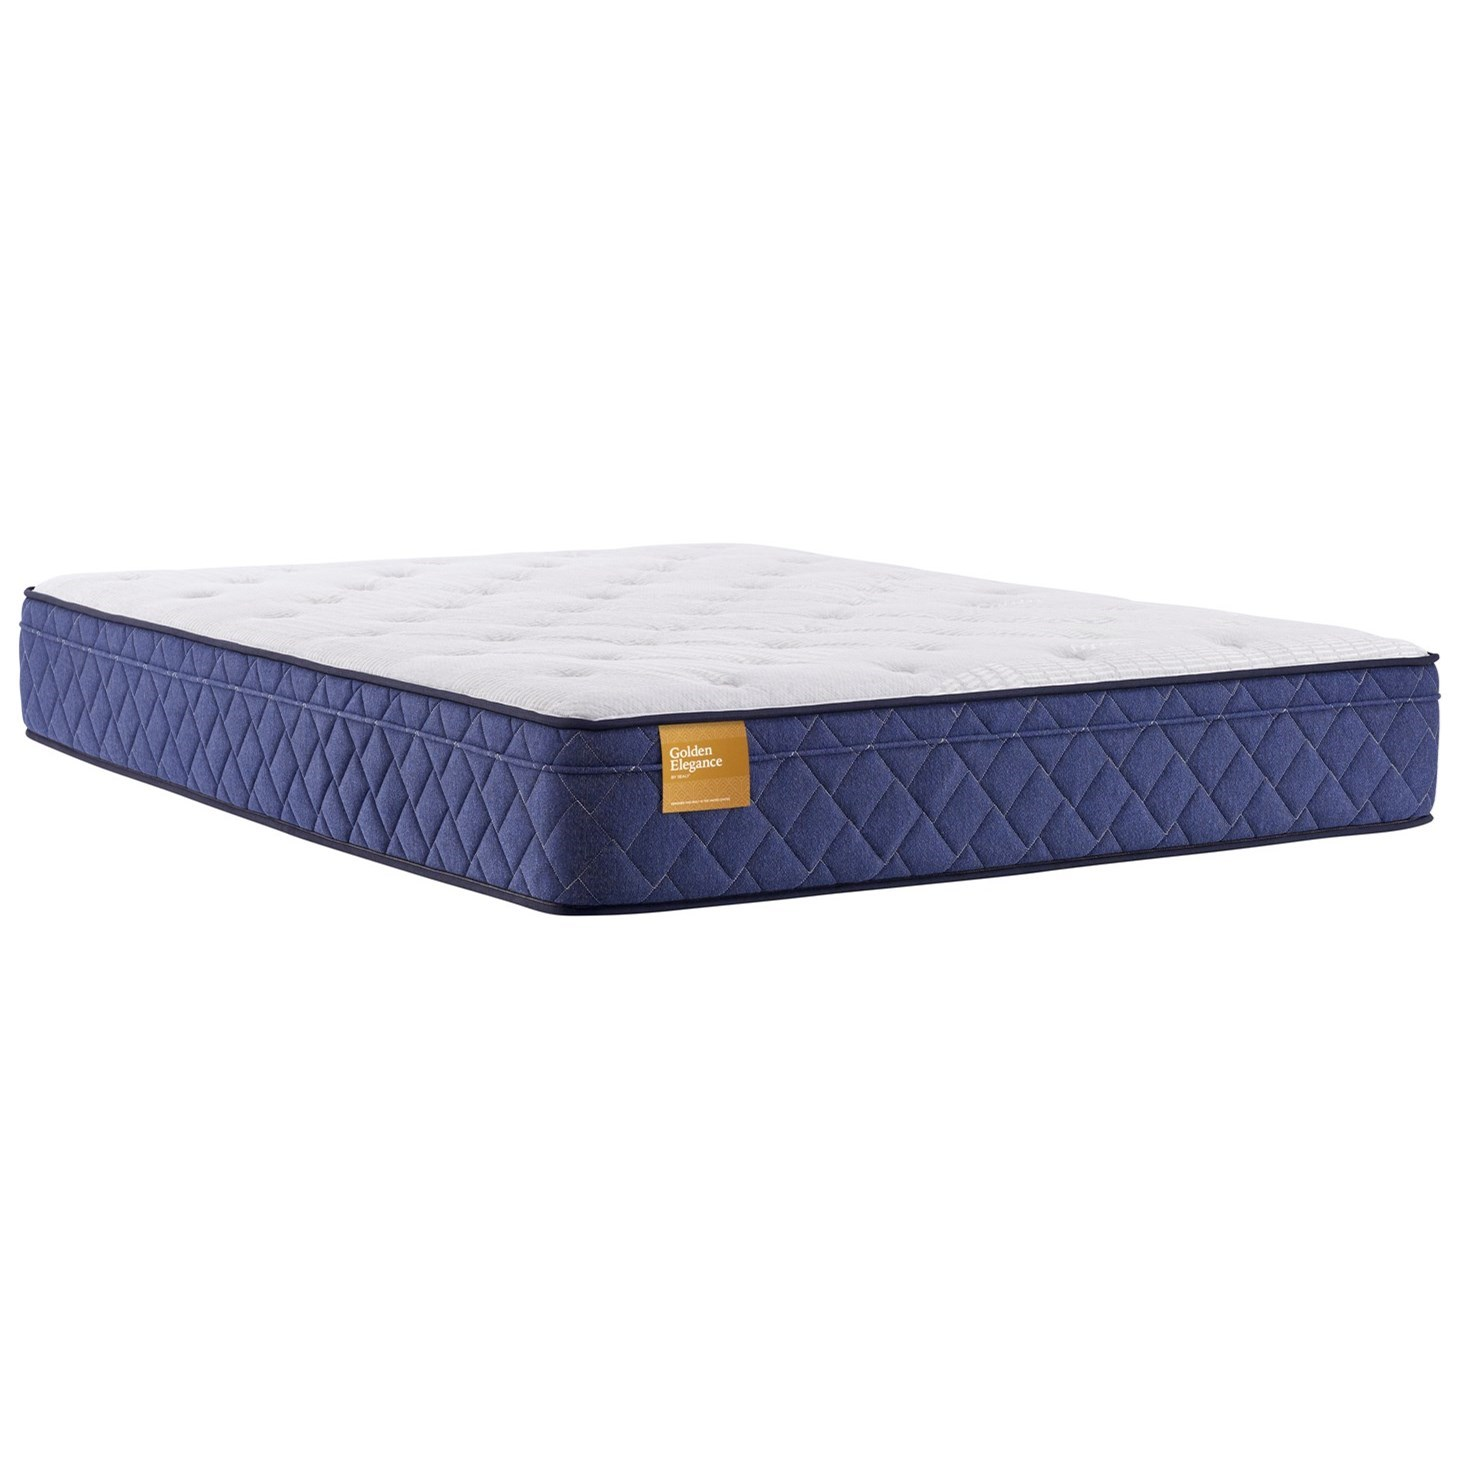 """Beauvior Plush ET B2 Queen 12"""" Plush Euro Top Mattress by Sealy at Beck's Furniture"""